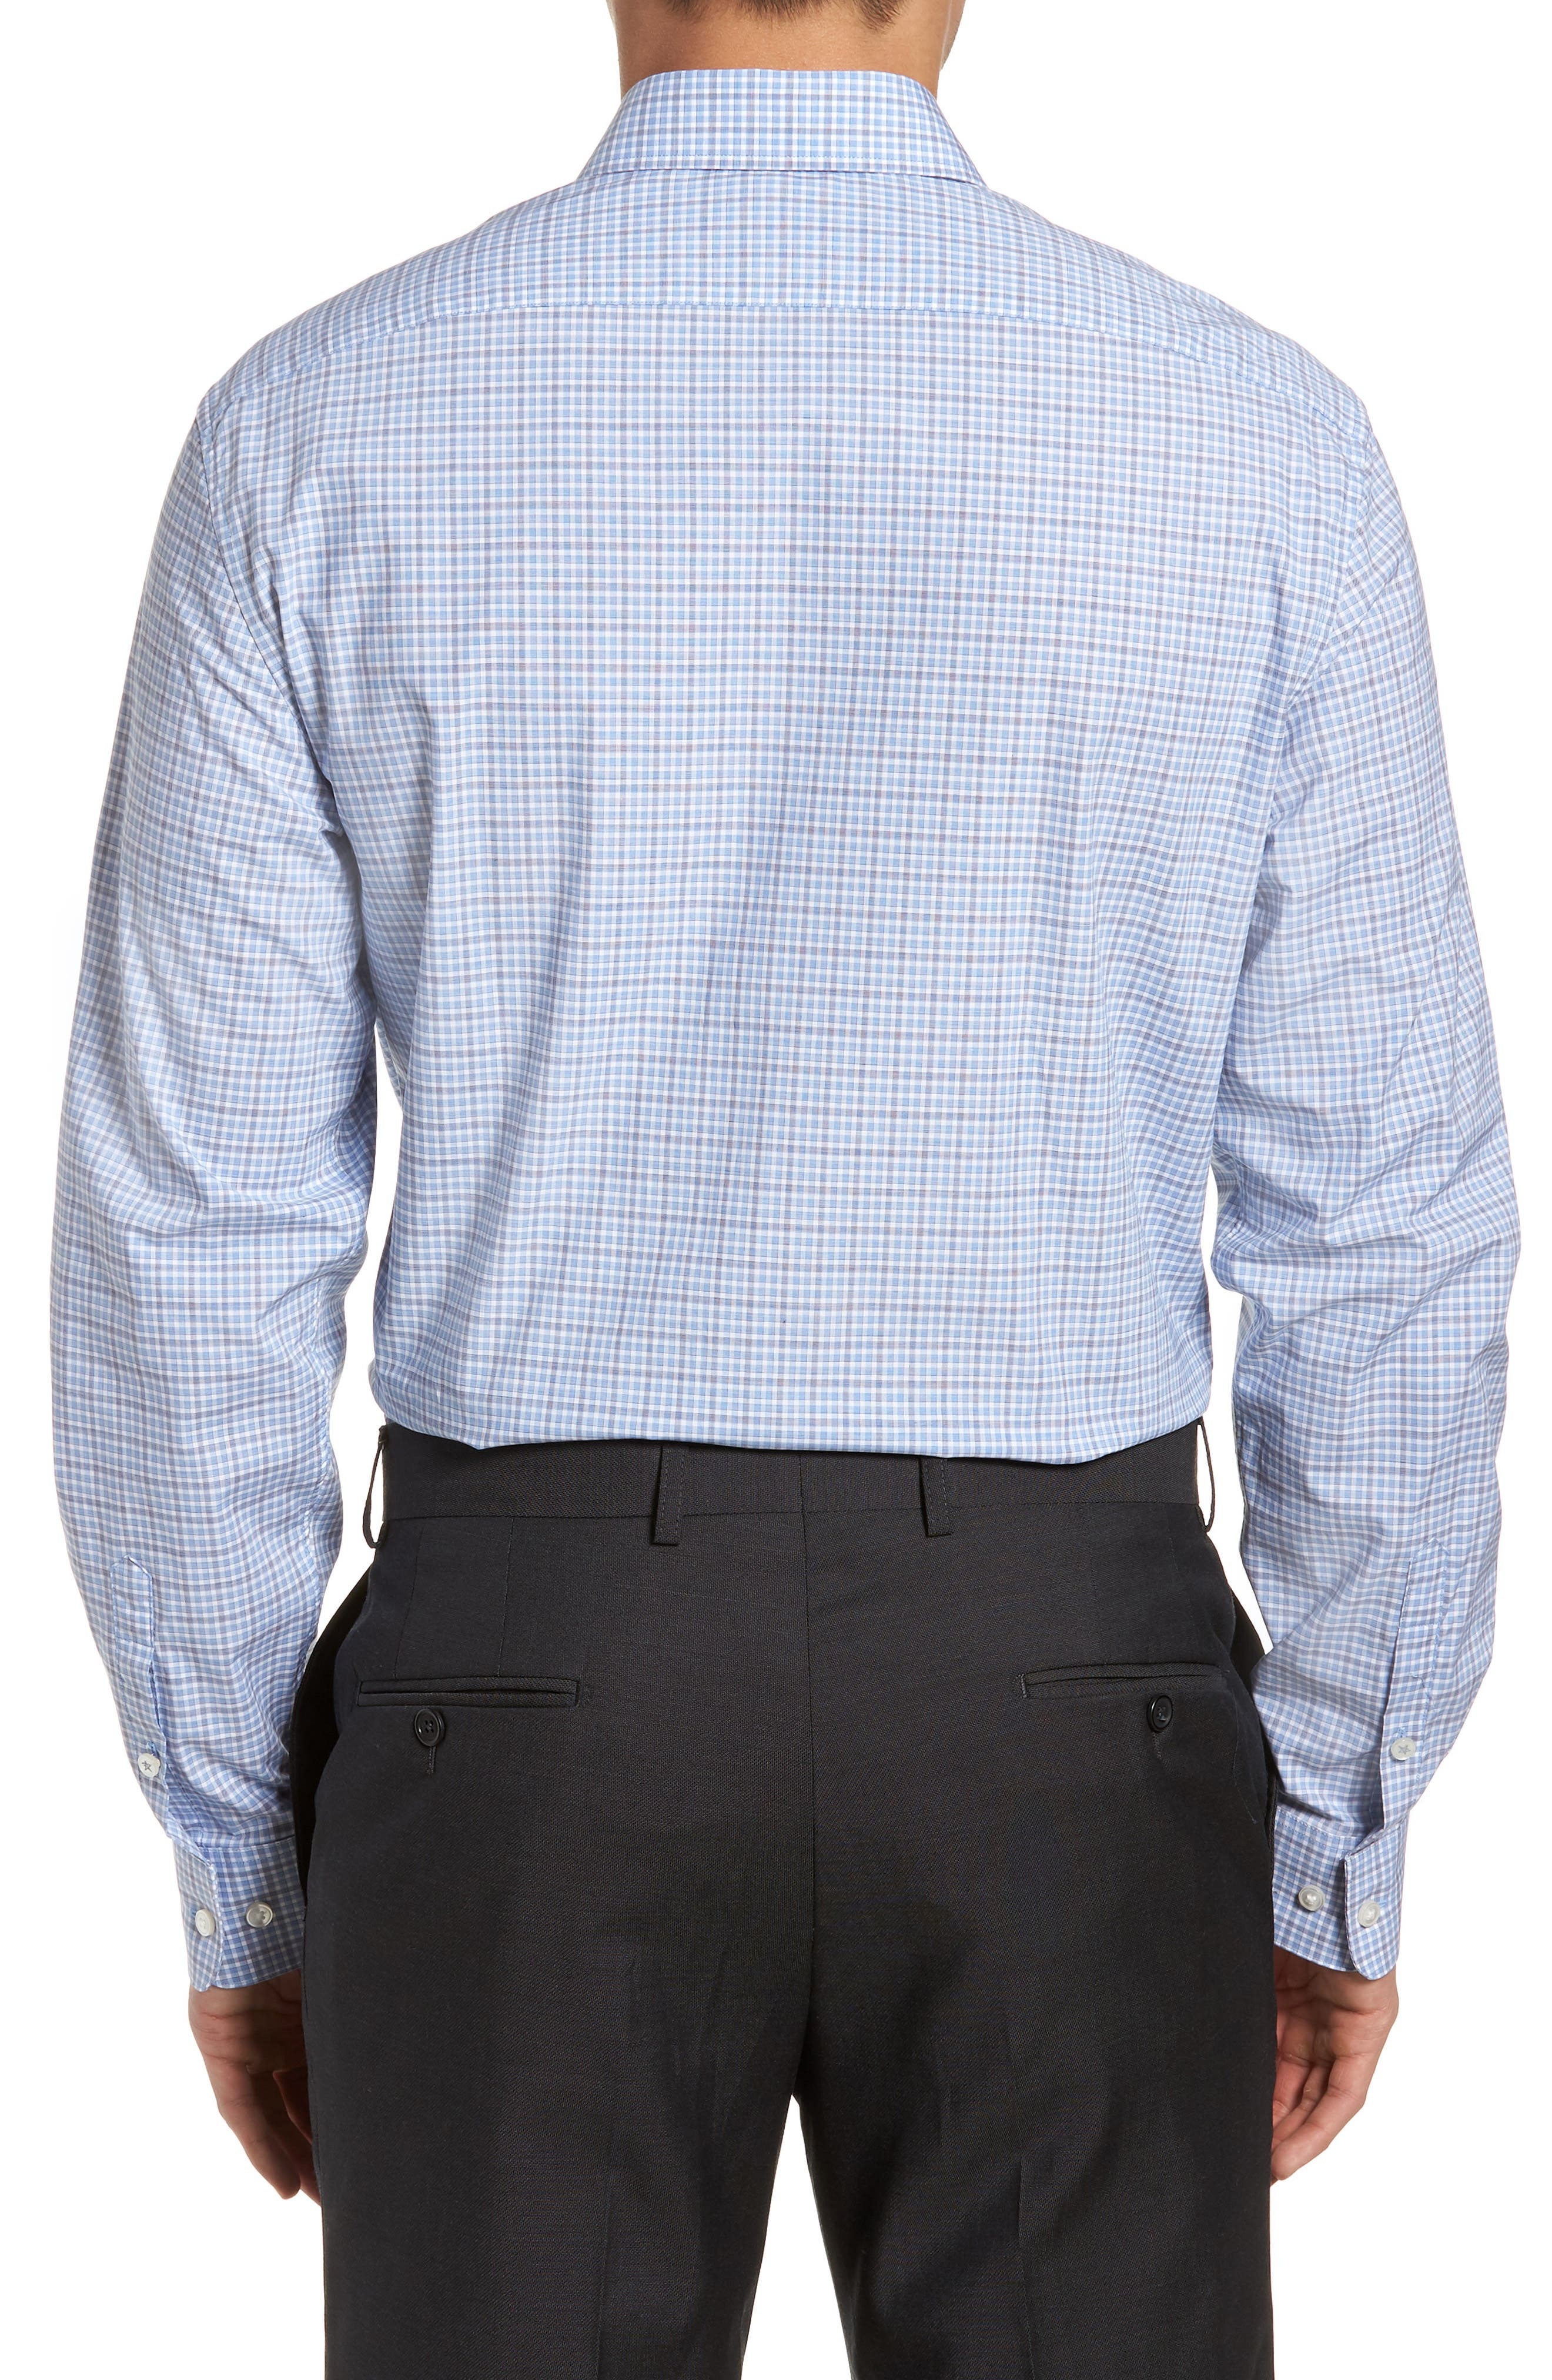 Regular Fit Stretch Check Dress Shirt,                             Alternate thumbnail 3, color,                             Sky